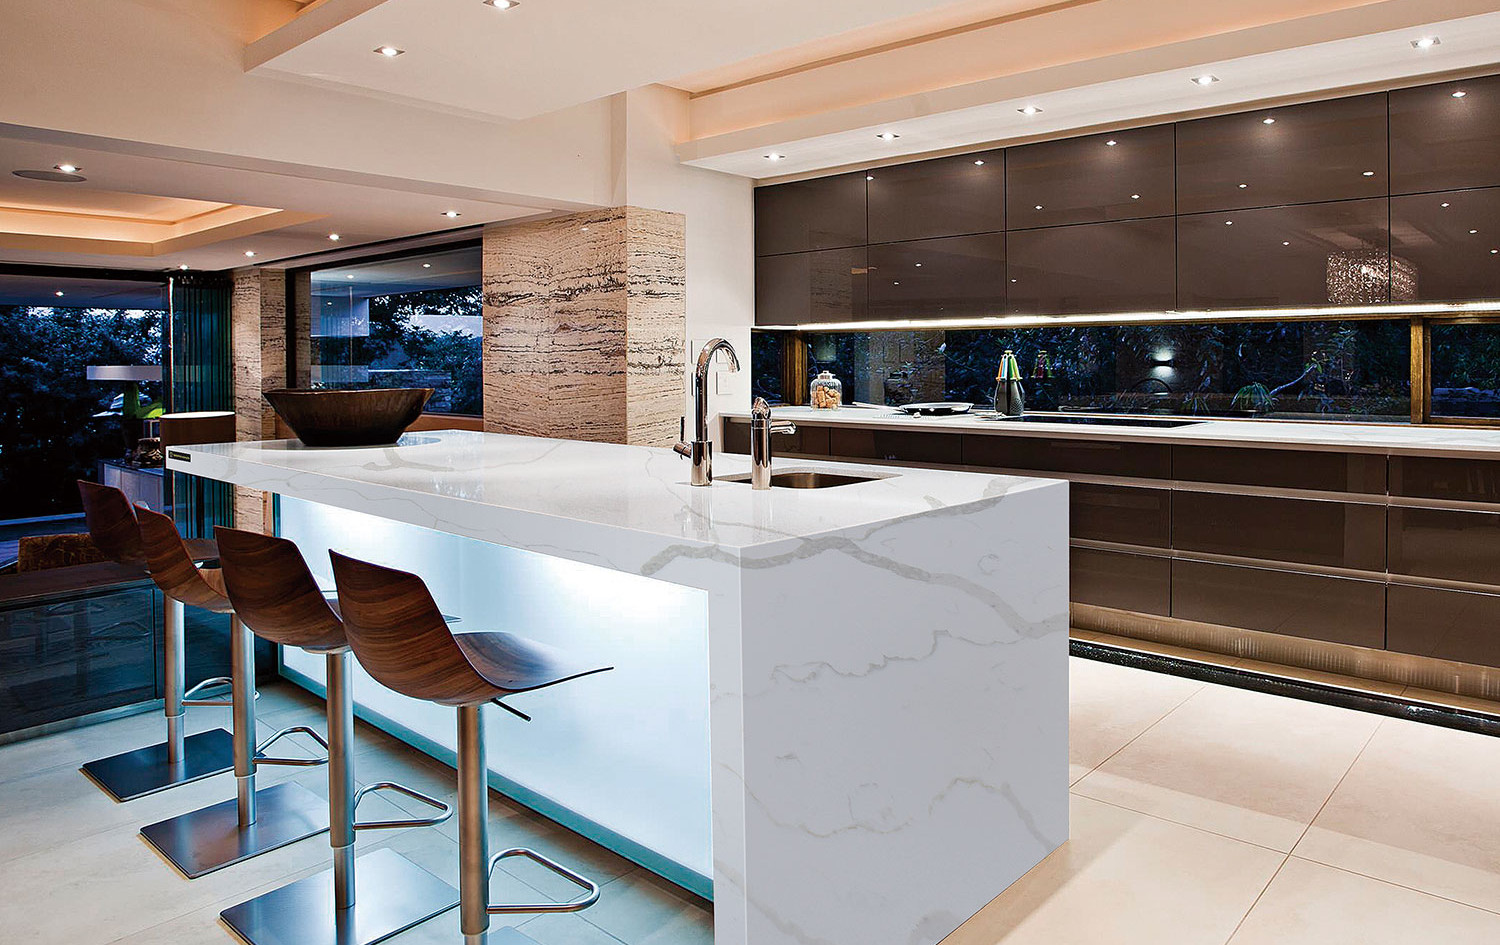 Modern Quartzite Kitchen Countertops,New York (NY), New Jersey (NJ) and Connecticut (CT), Njcountertops.com